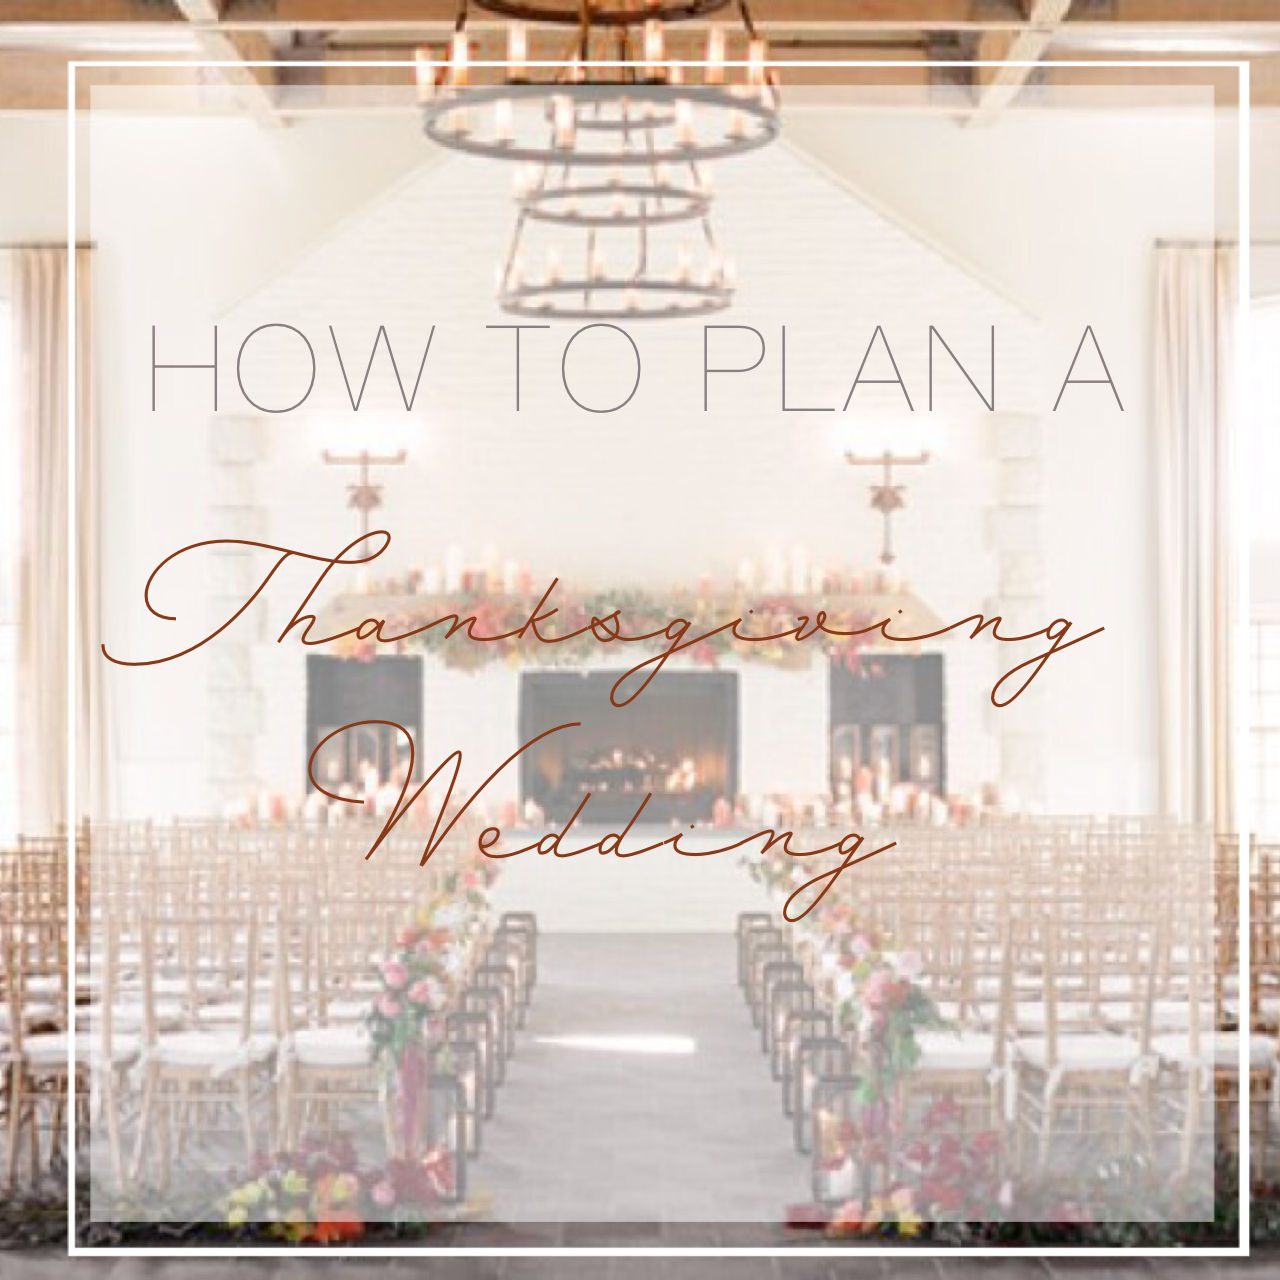 How to Plan a Thanksgiving wedding